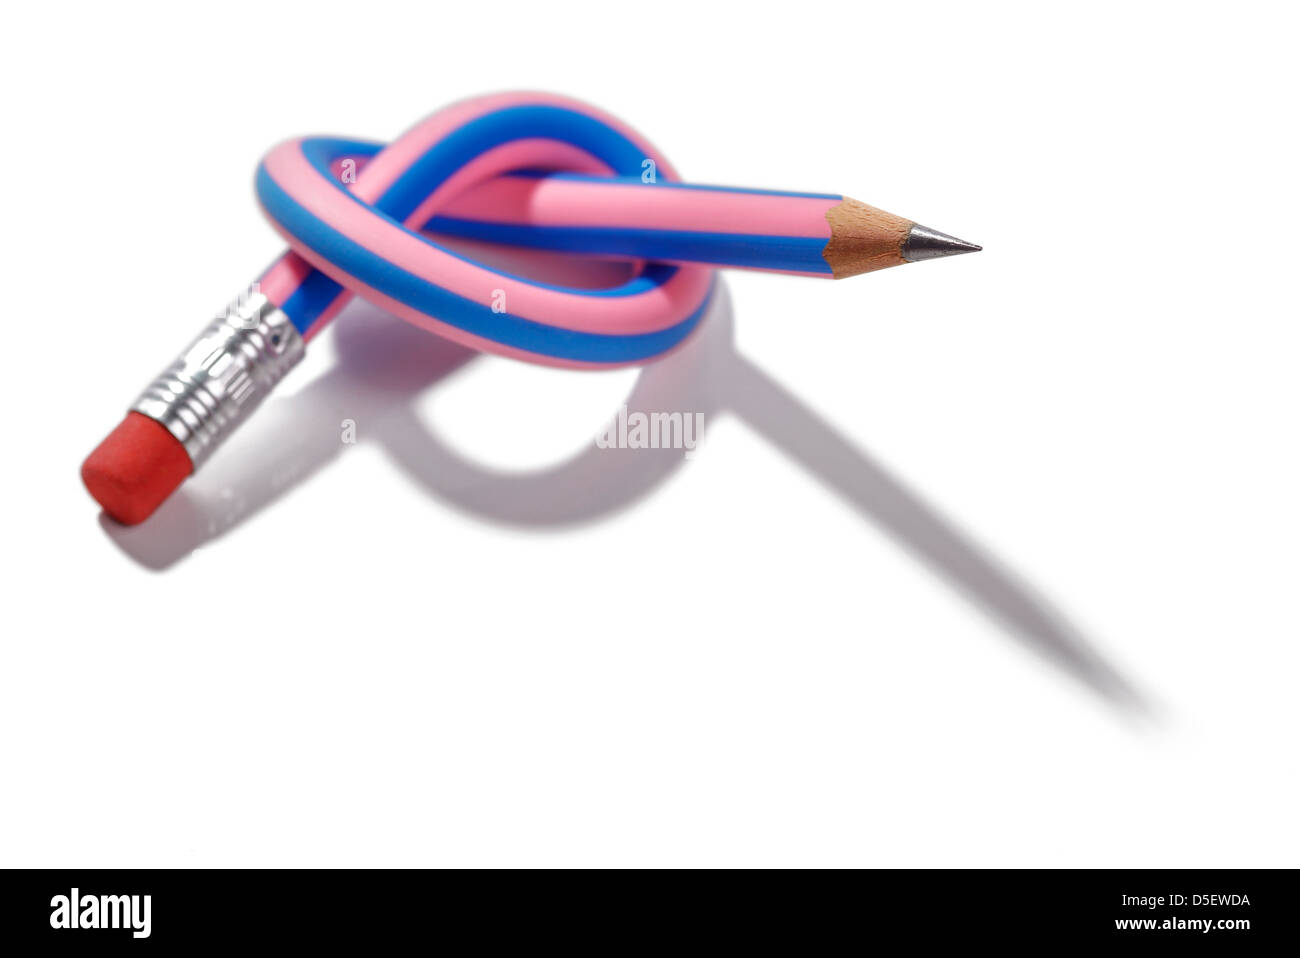 Pencil tied in a knot - Stock Image